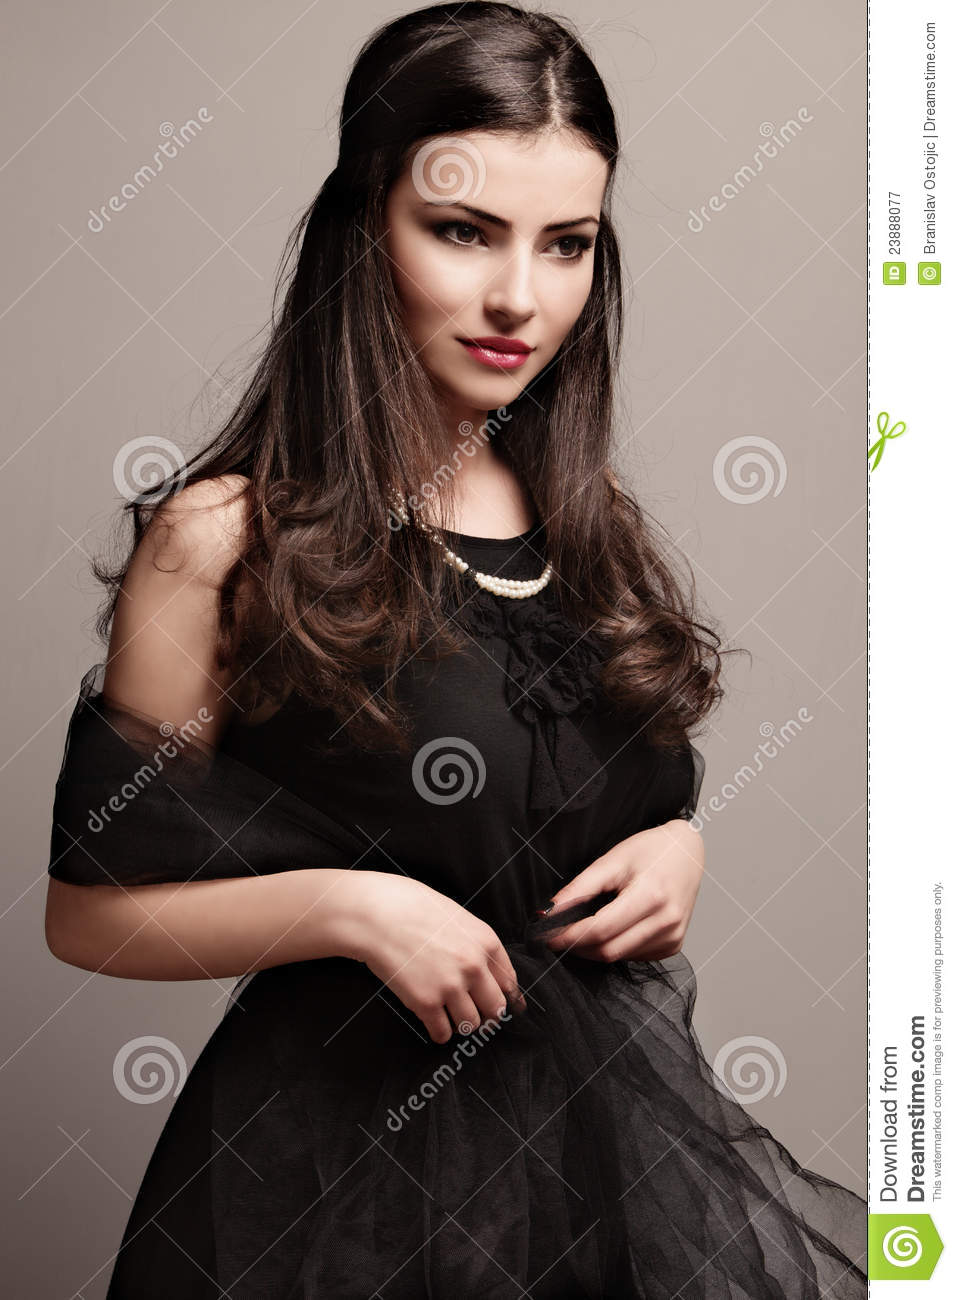 aaf81d7aa3d Black dress and pearls stock image. Image of female